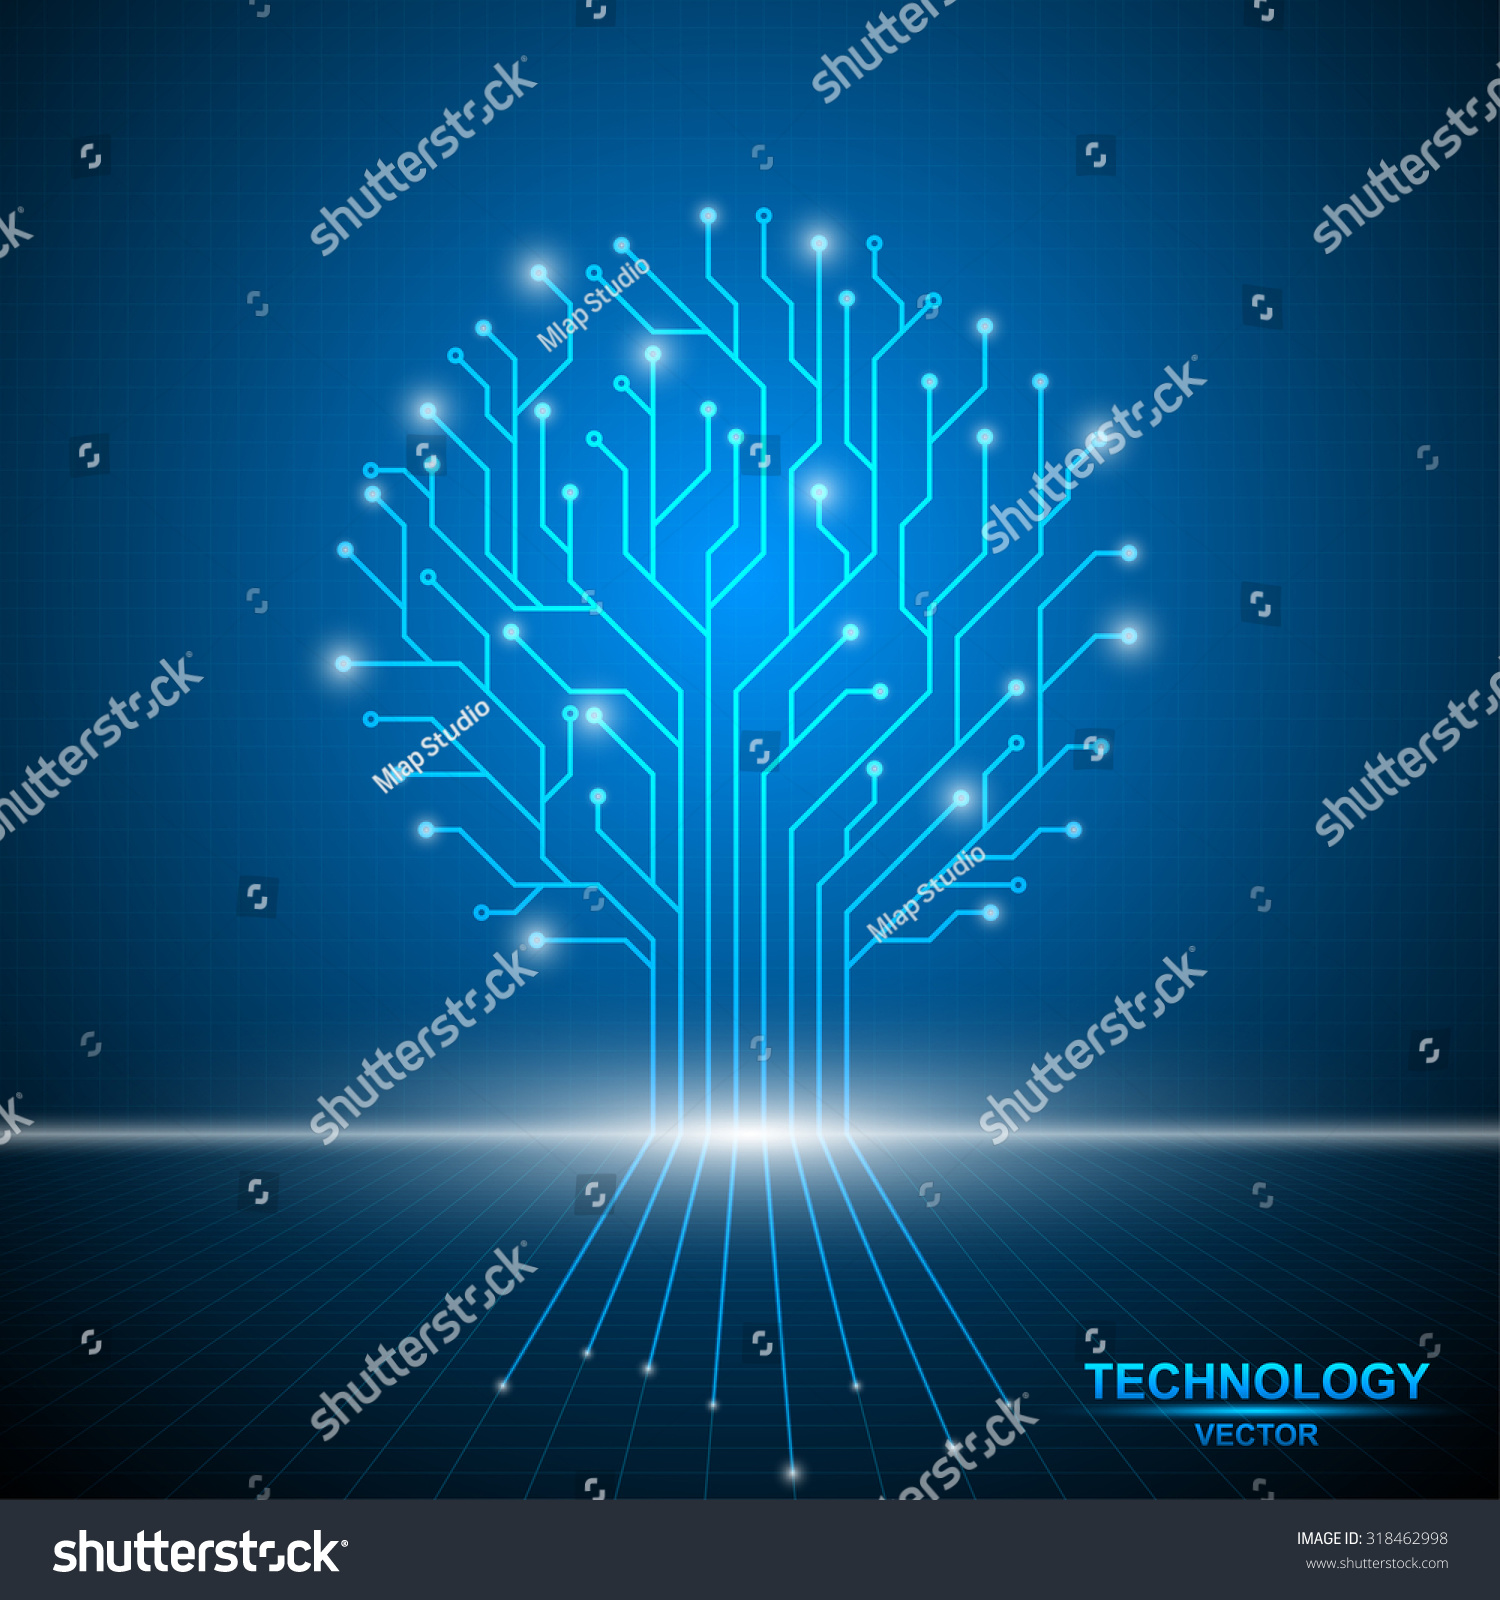 Tree Circuit Board Technology Abstract Template Stock Vector ...